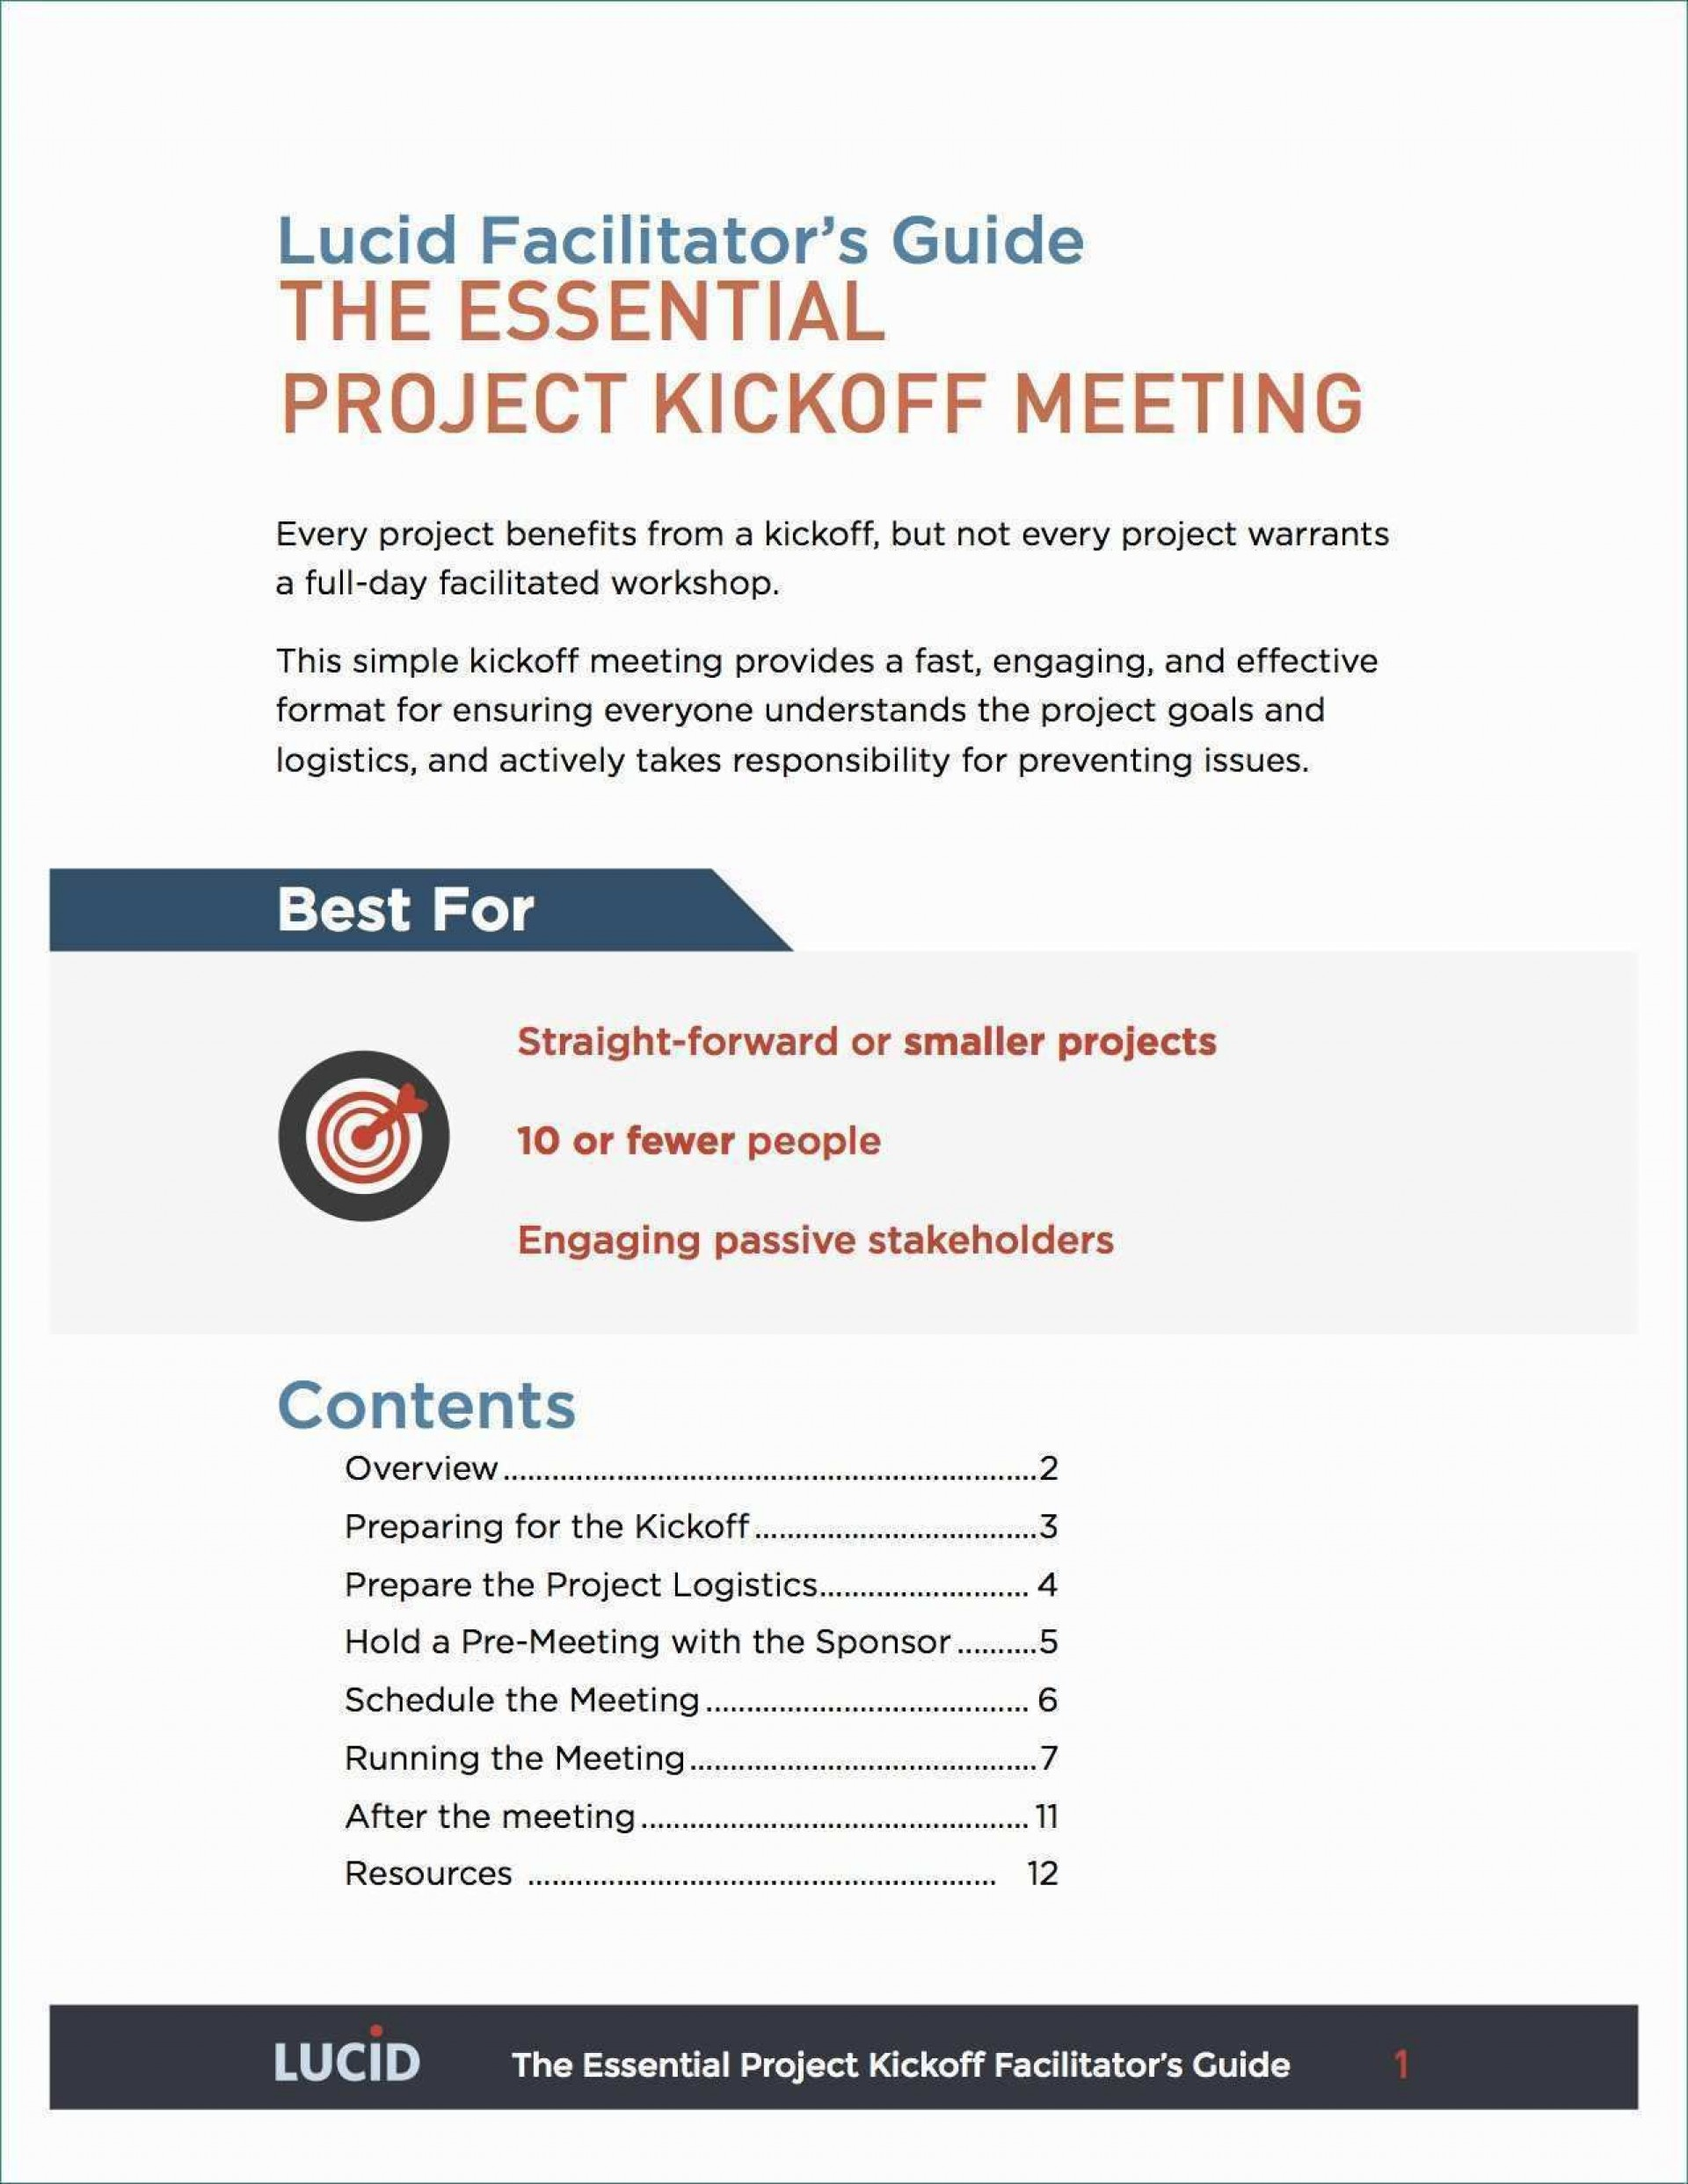 000 Unusual Project Kickoff Meeting Agenda Example Photo  Management Template1920